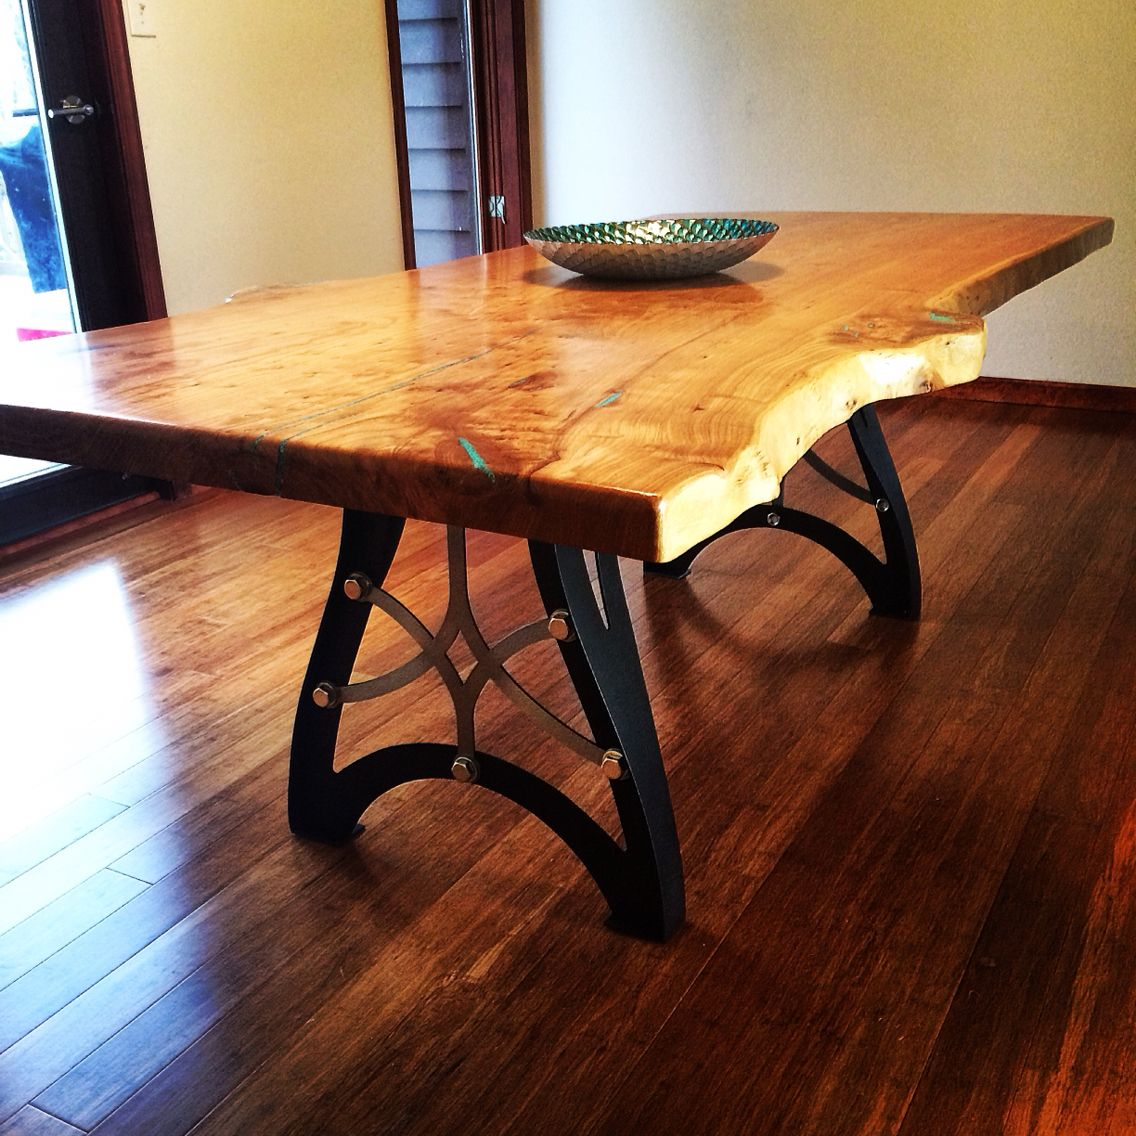 Elegant Handcrafted Vintage Industrial Steampunk Metal Legs, Live Edge American Elm Wood  Slab Table Top.